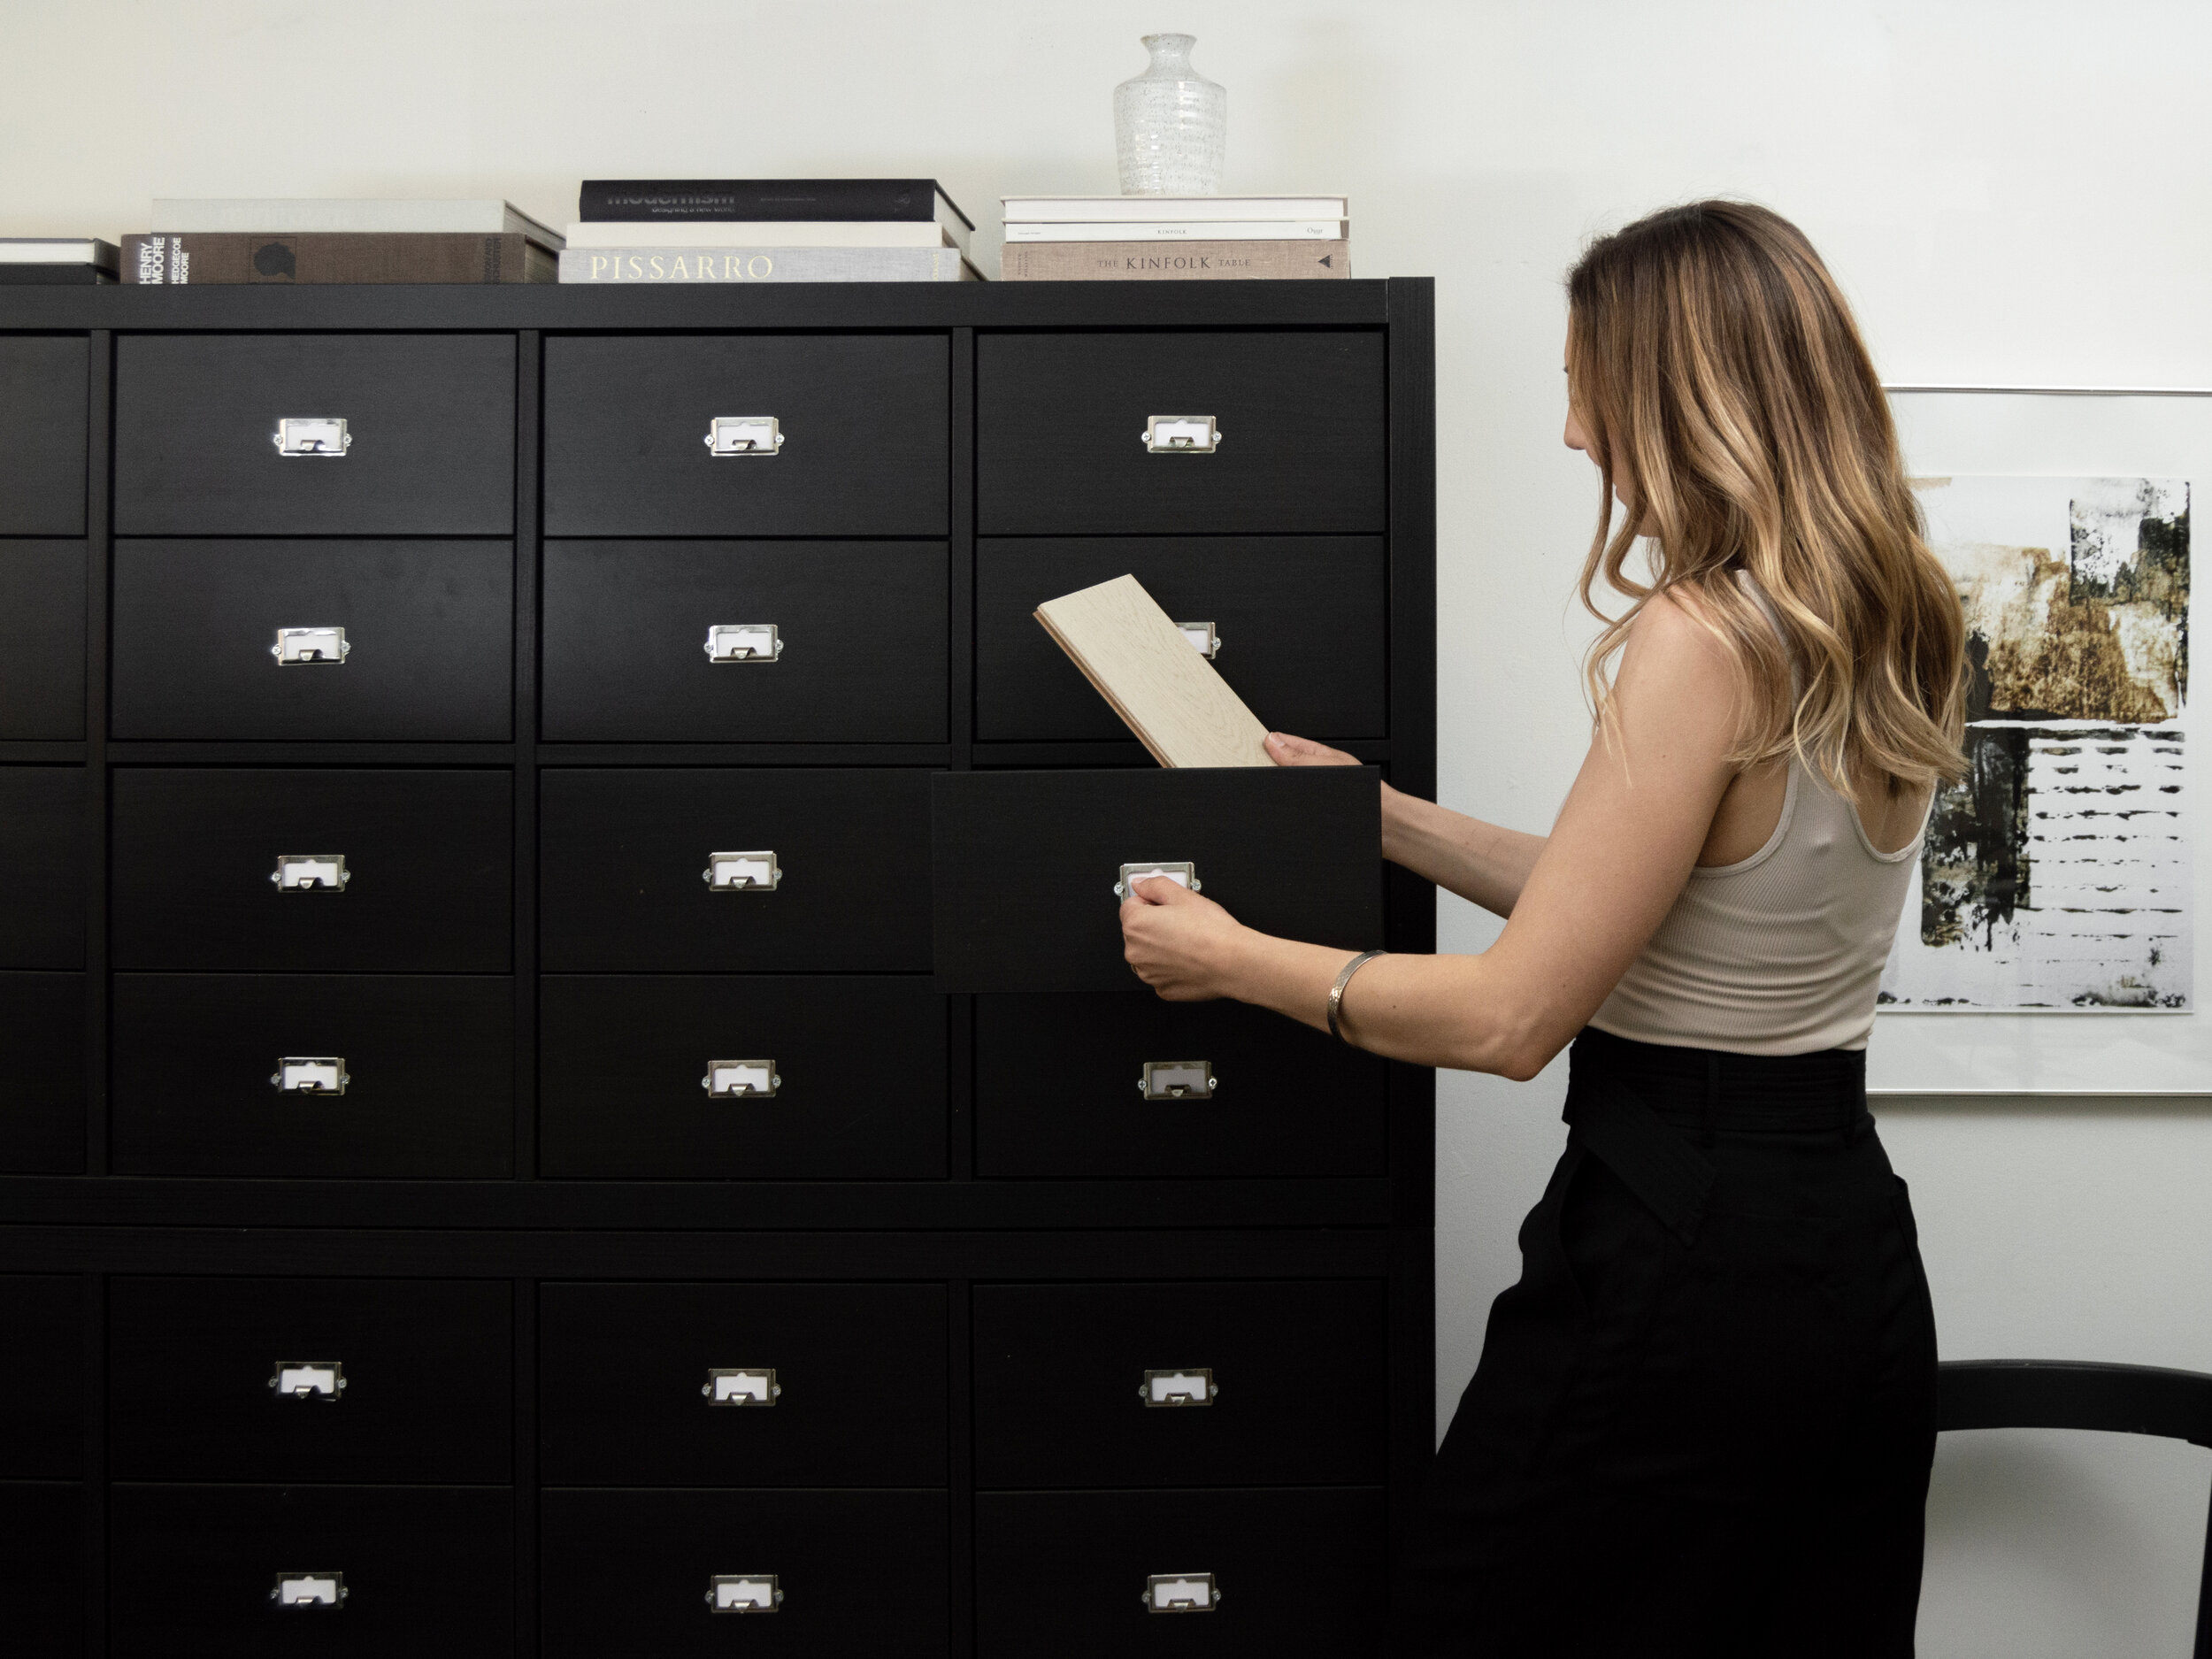 DIY Ikea Hack with kallax Shelves - A modern Library Card catalog cabinet by The Savvy Heart